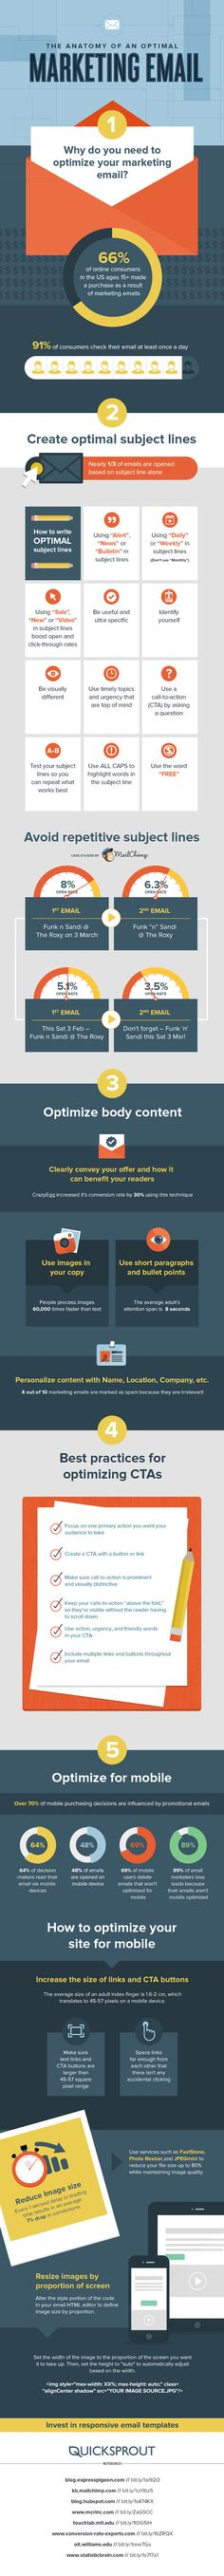 The Anatomy of an optimal Email Marketing  #marketing #contentmarketing #content